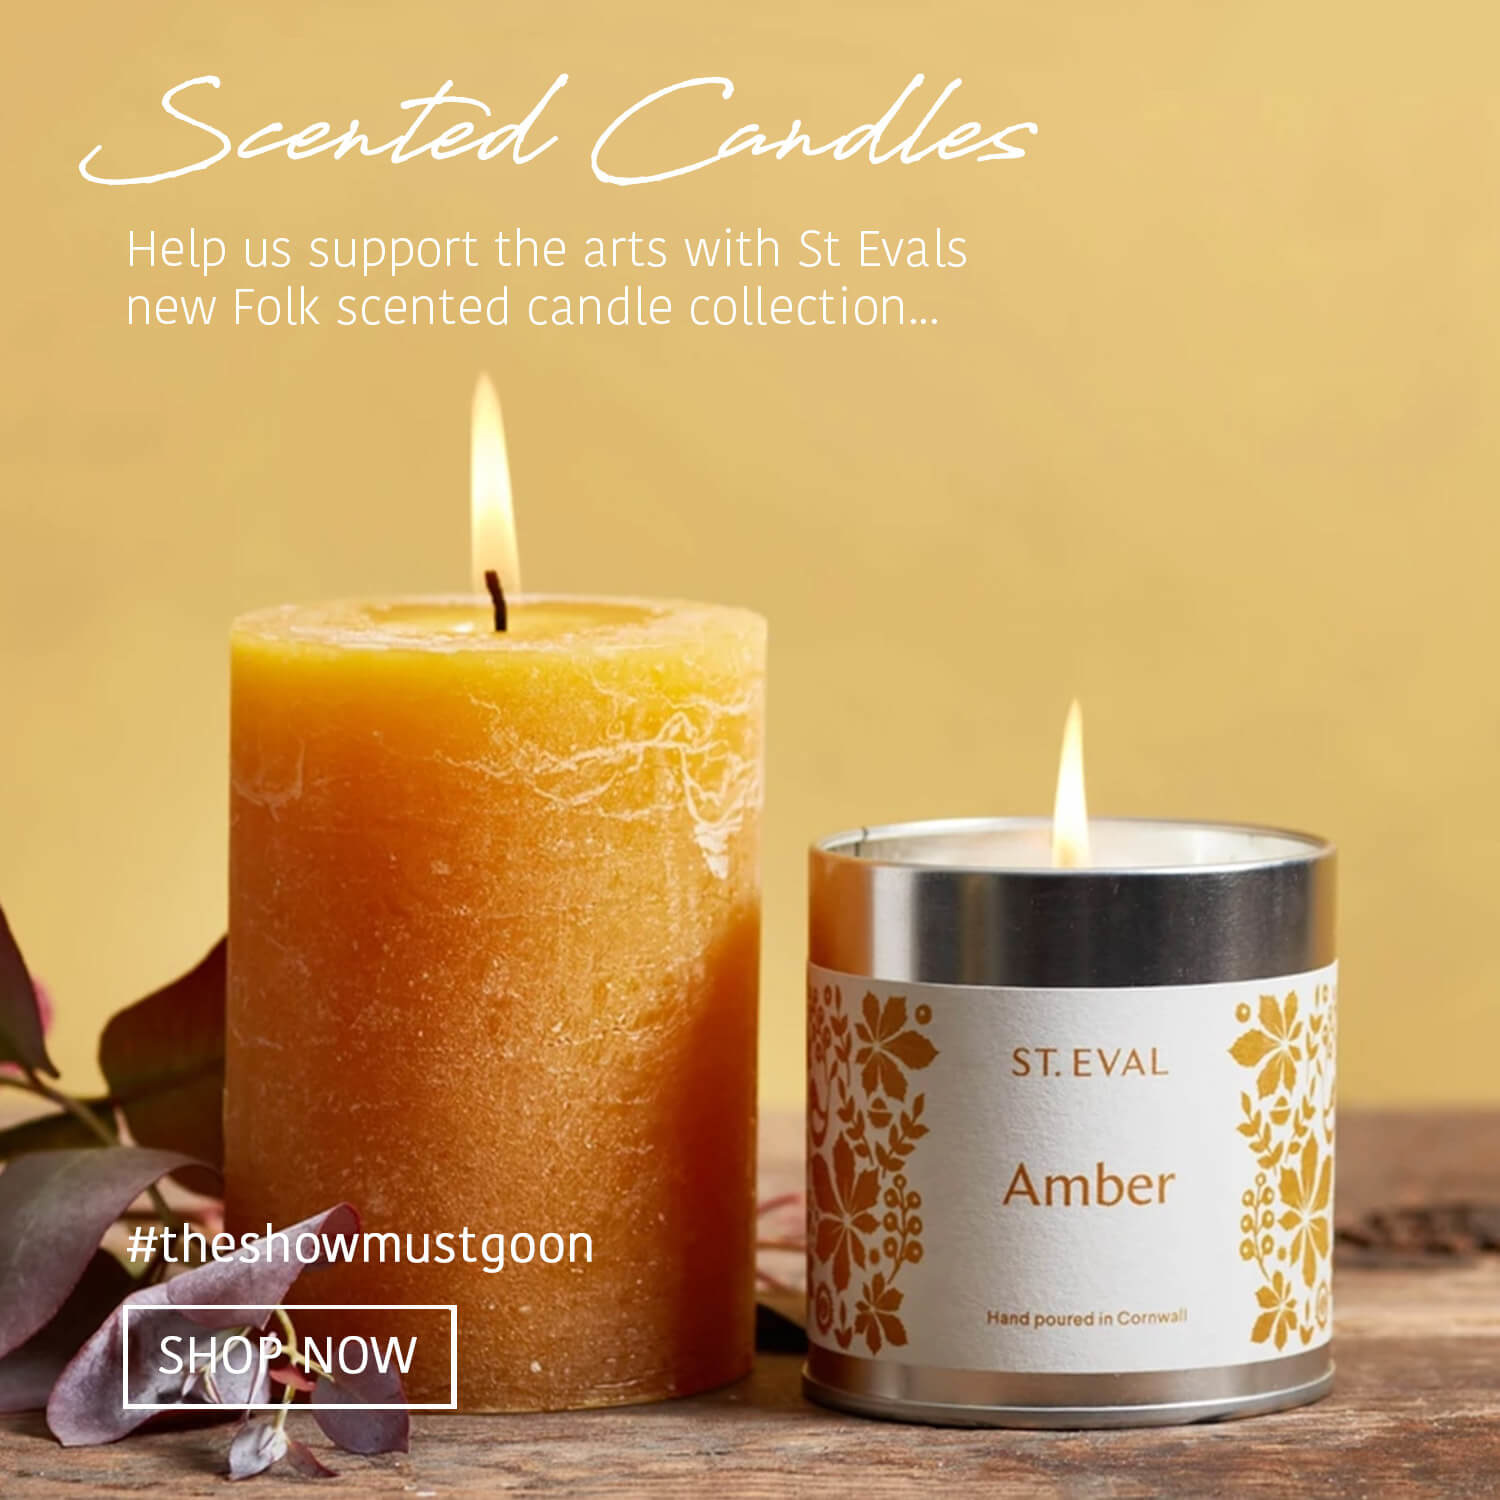 Browse home fragrance